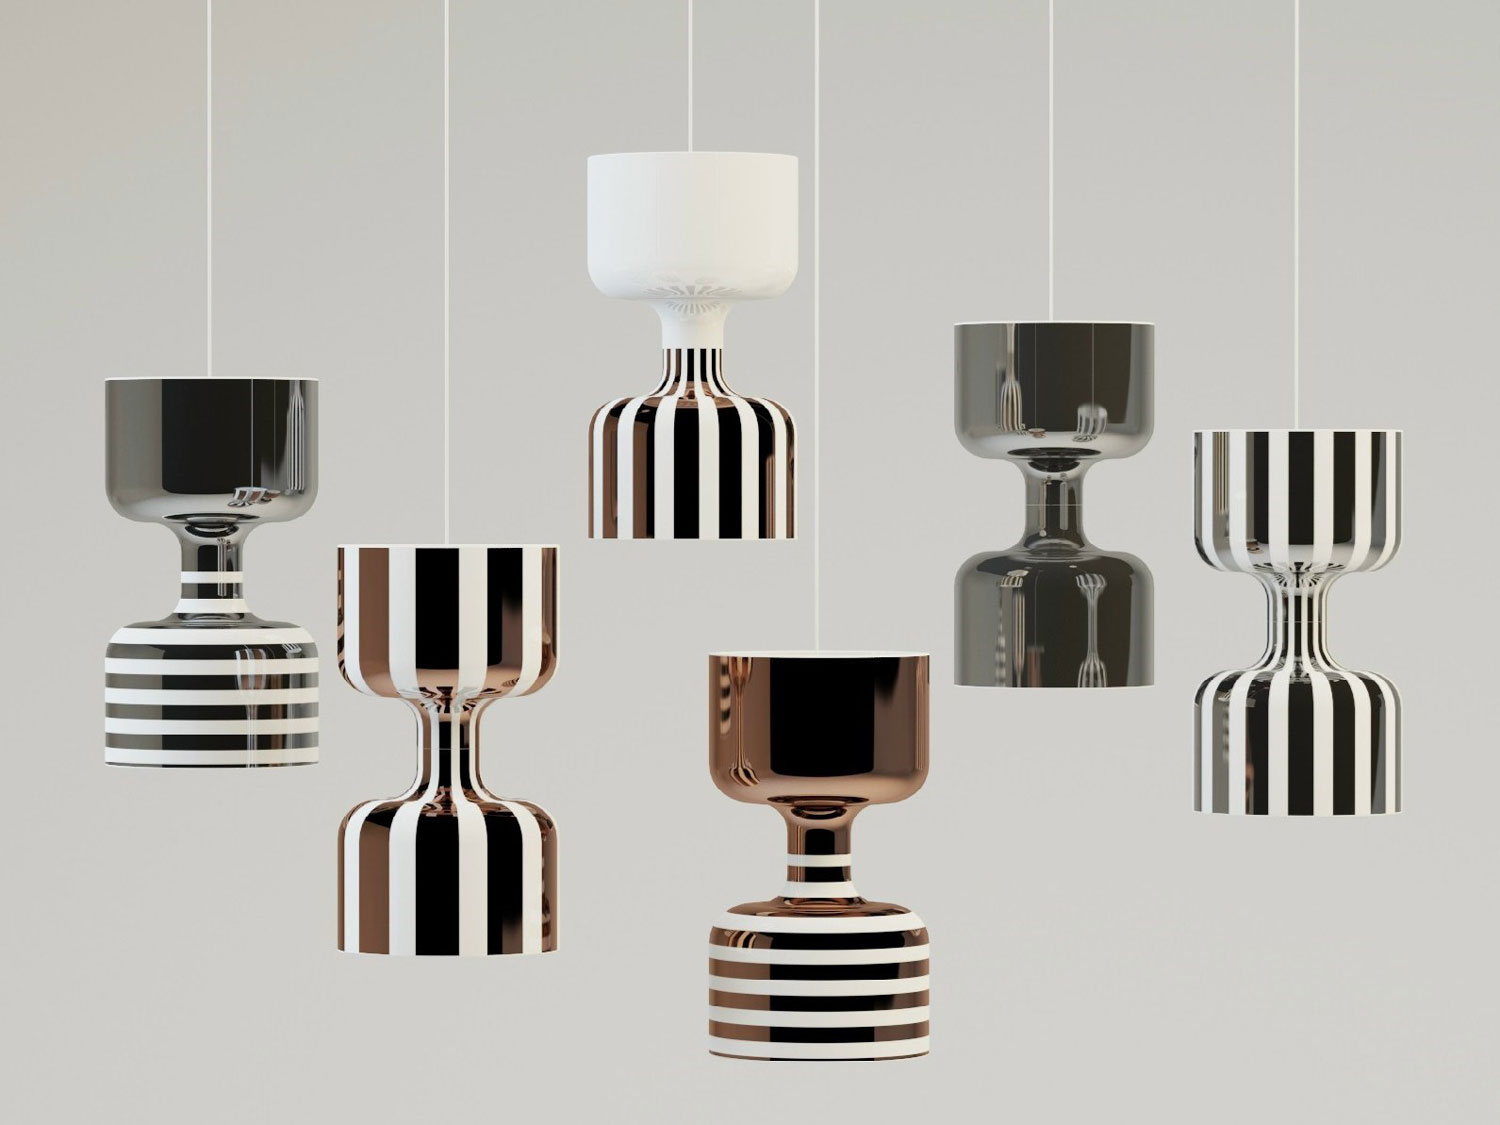 'Chapiteau,' New Lamps Collection by Ekaterina Elizarova for Bosa at 100 Design | Yellowtrace